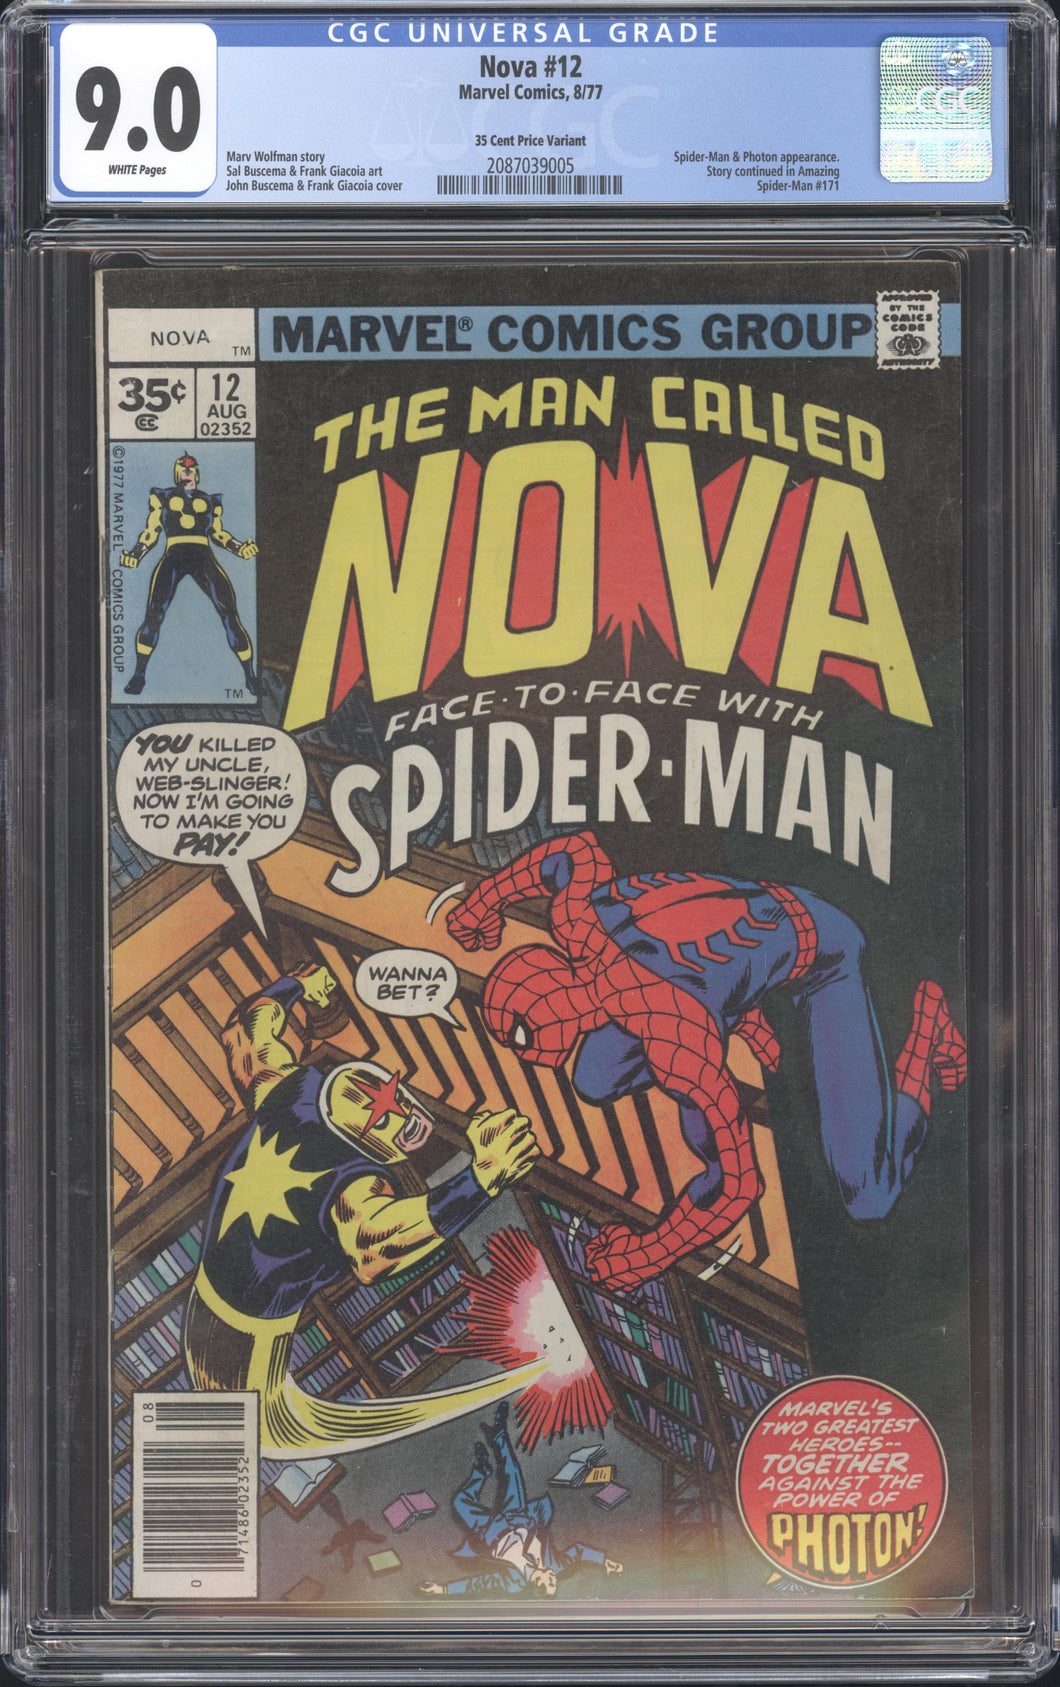 NOVA #12 RARE 35 CENT PRICE VARIANT CGC 9.0 SPIDER-MAN APPEARANCE MARVEL 1977